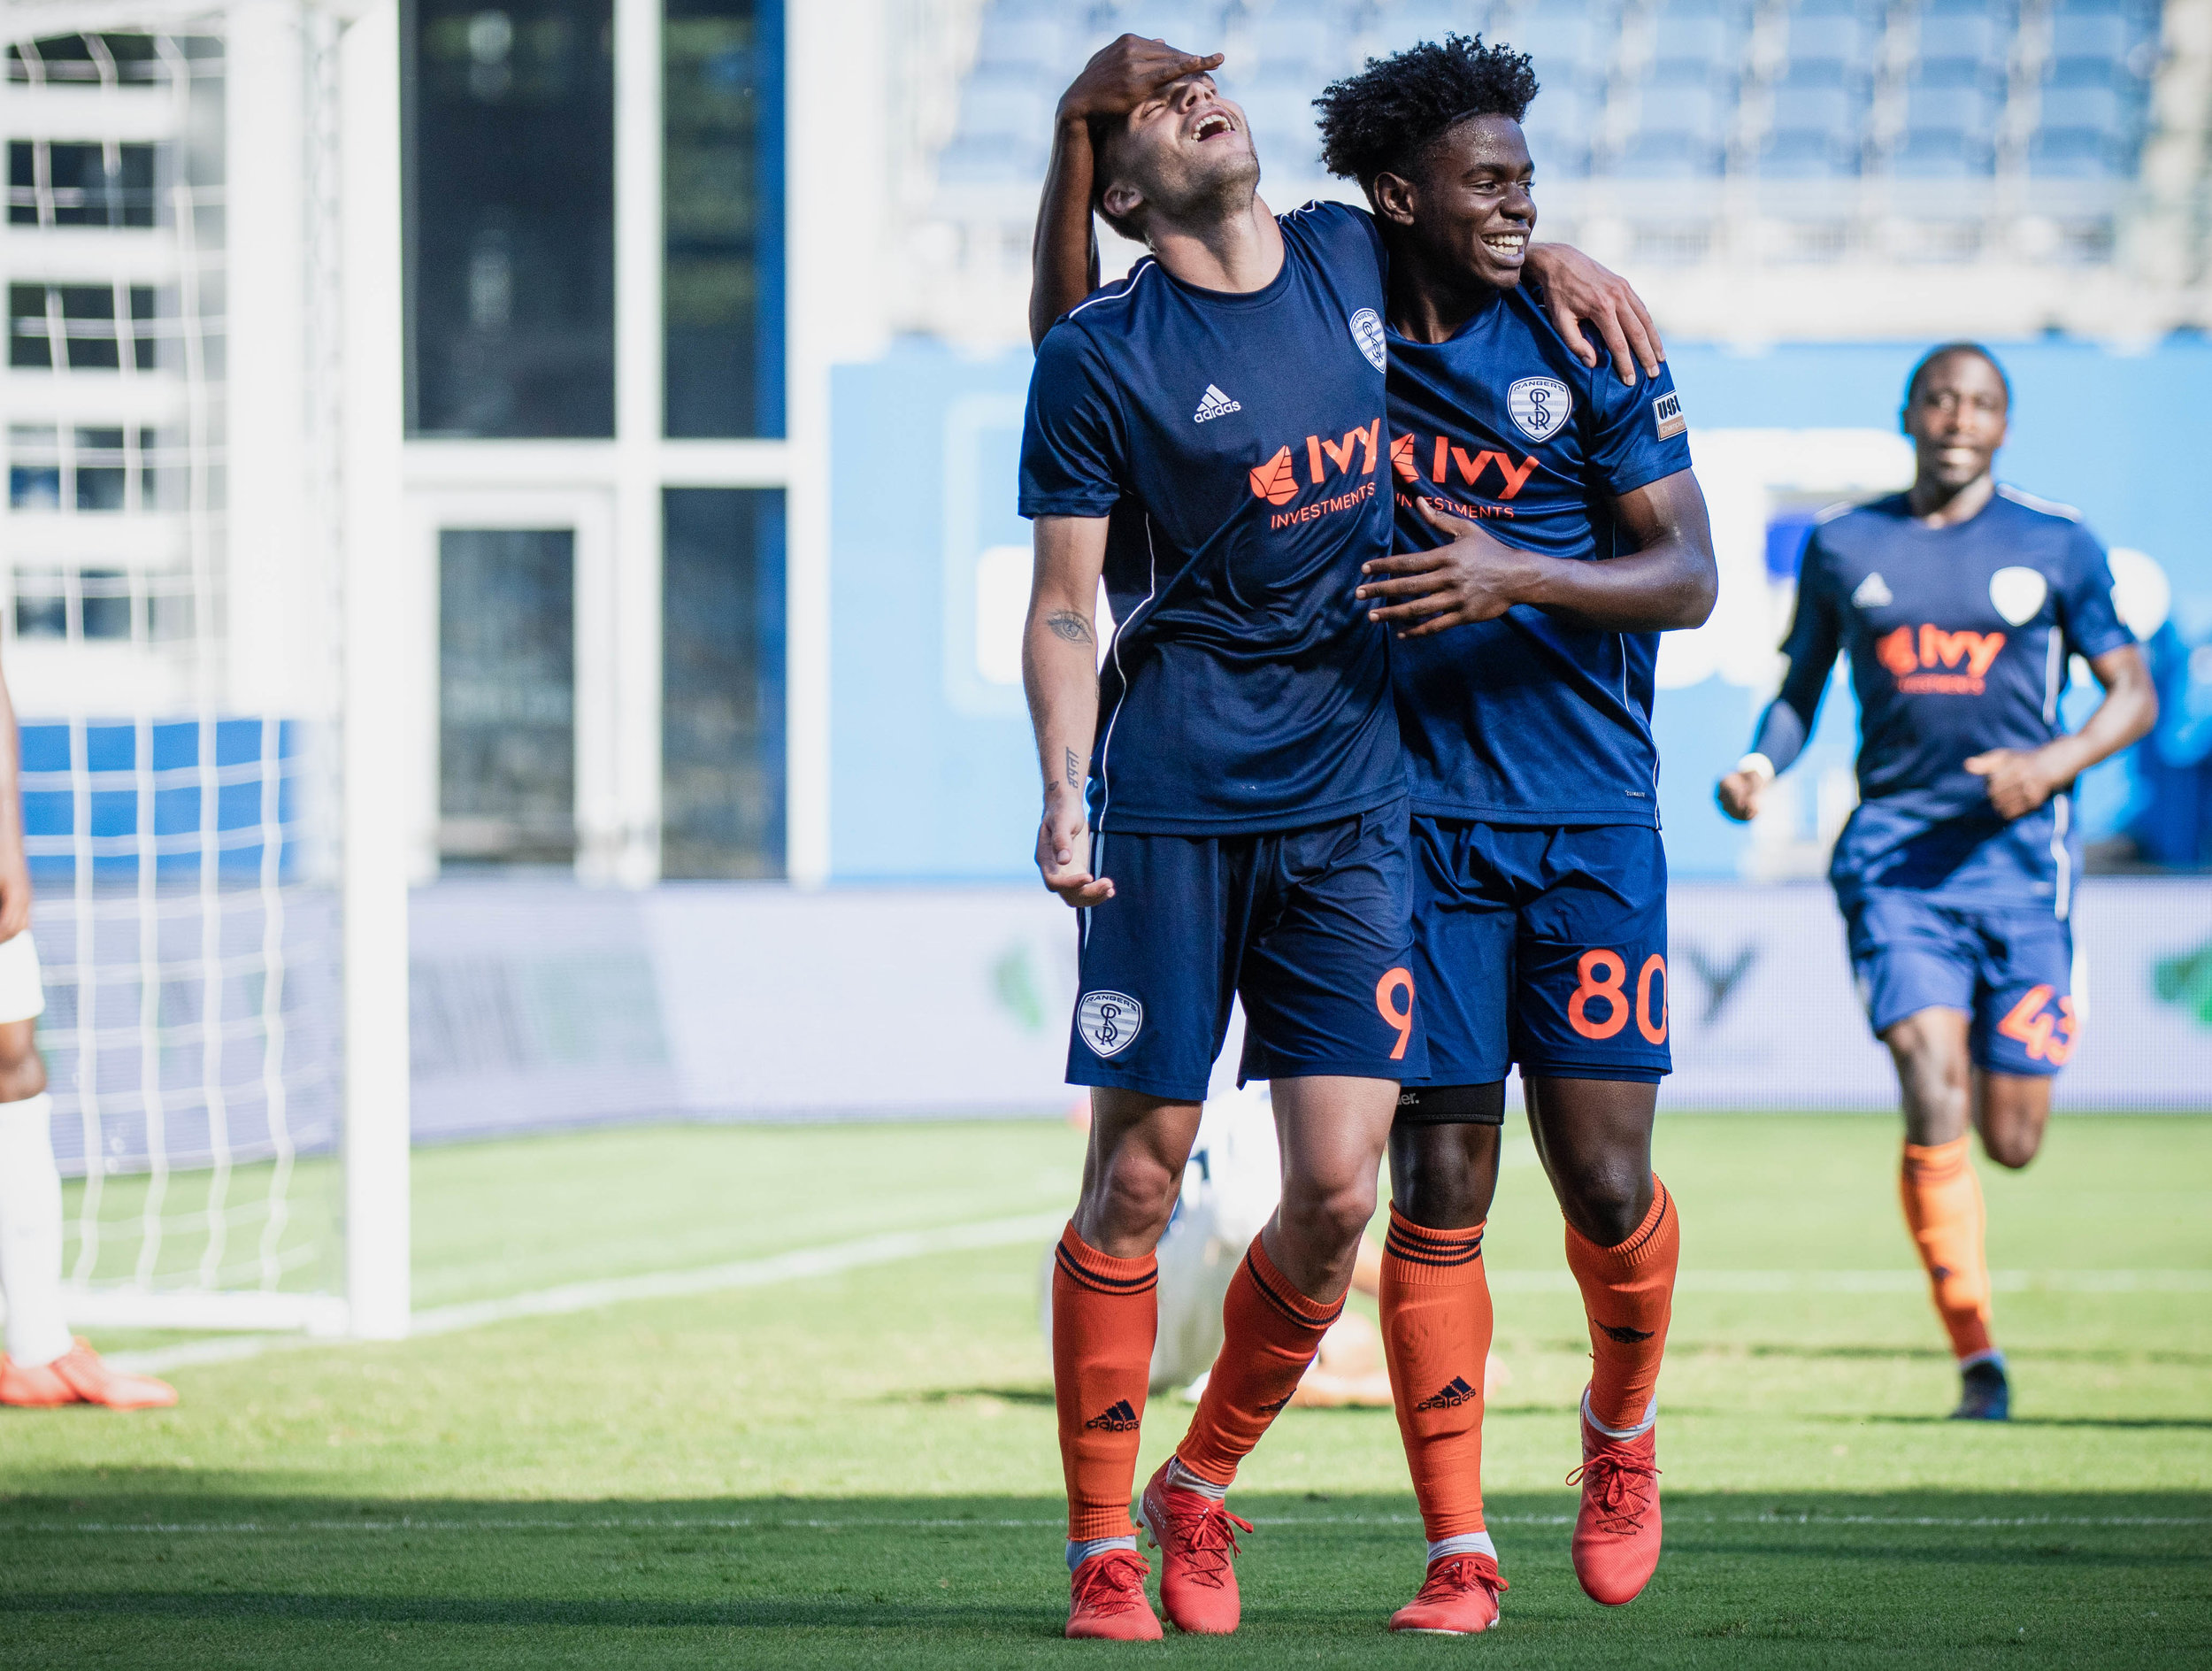 Ethan Vanacore-Decker (91) celebrates with Sean Karani (80) after scoring in the Swope Park Rangers vs. Saint Louis FC match on Sunday, June 30, 2019 at Children's Mercy Park in Kansas City, Kansas. The Rangers took down Saint Louis 2-1 breaking their 8 game winless streak.